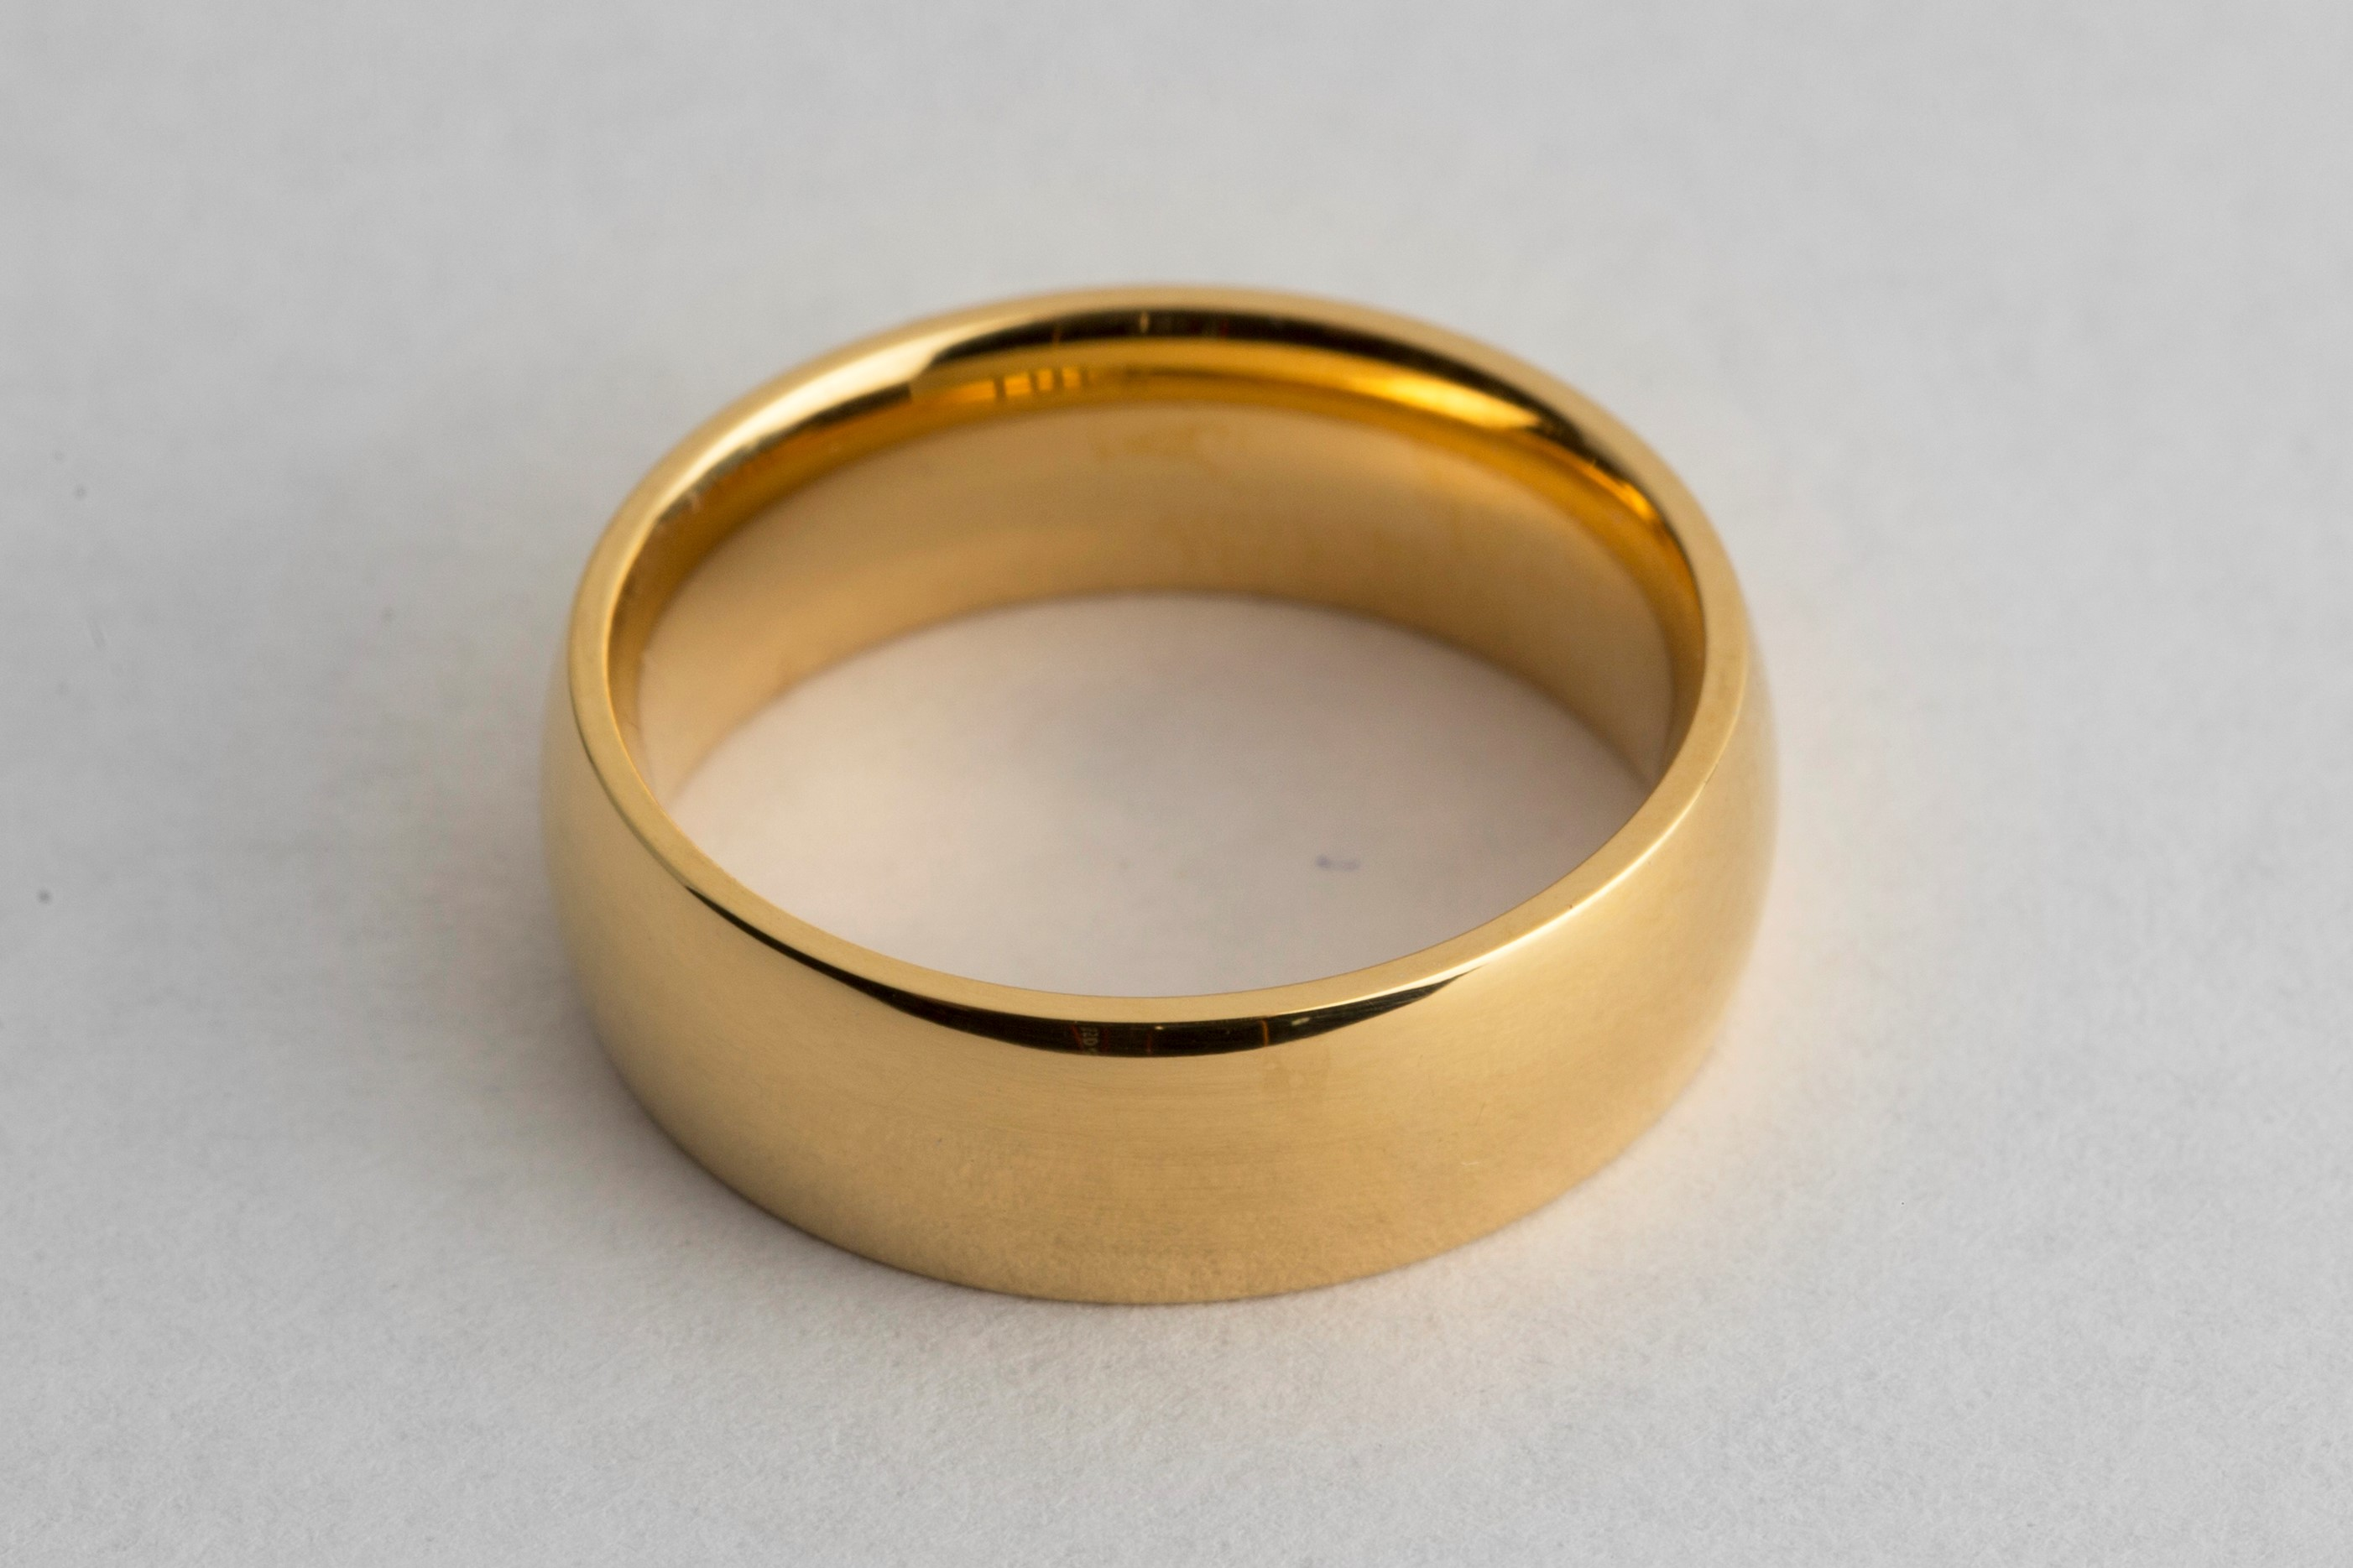 Gold wedding ring electroplated with 24k gold solution